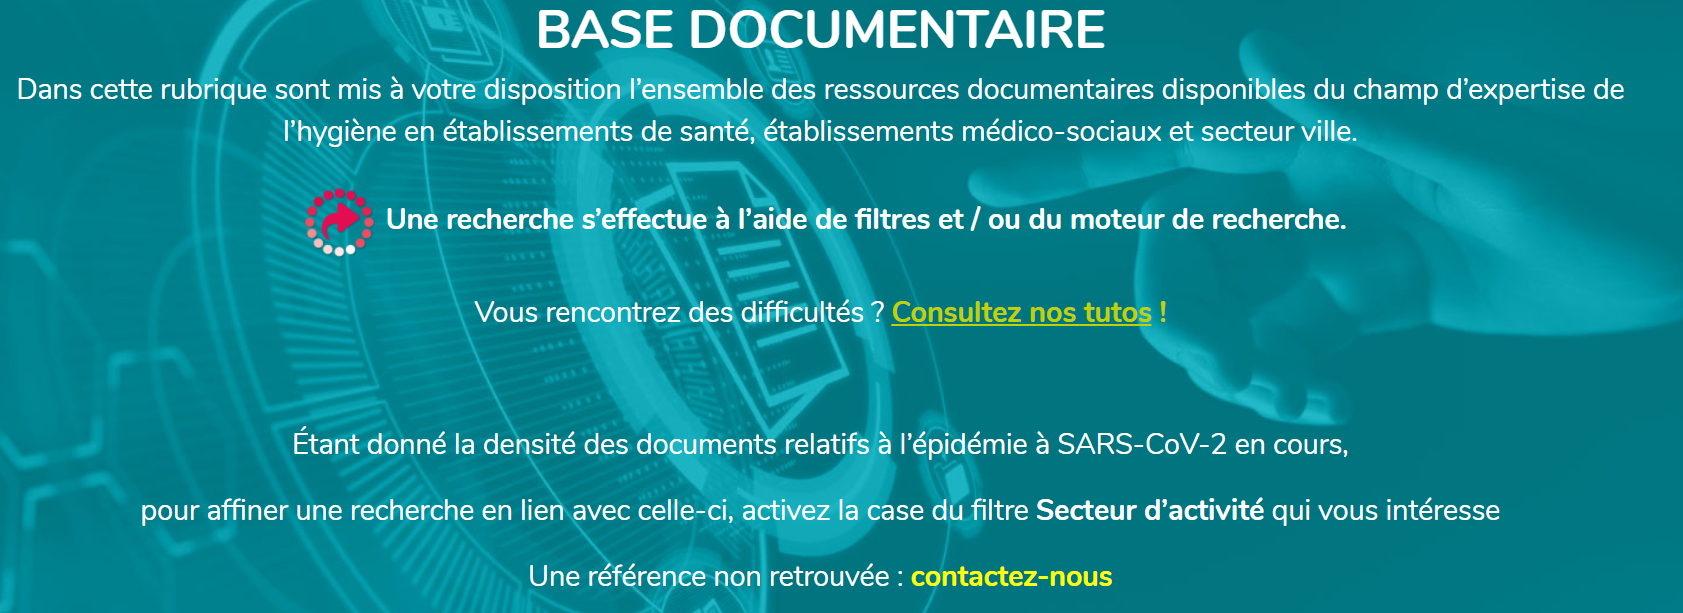 base documentaire REPIAS